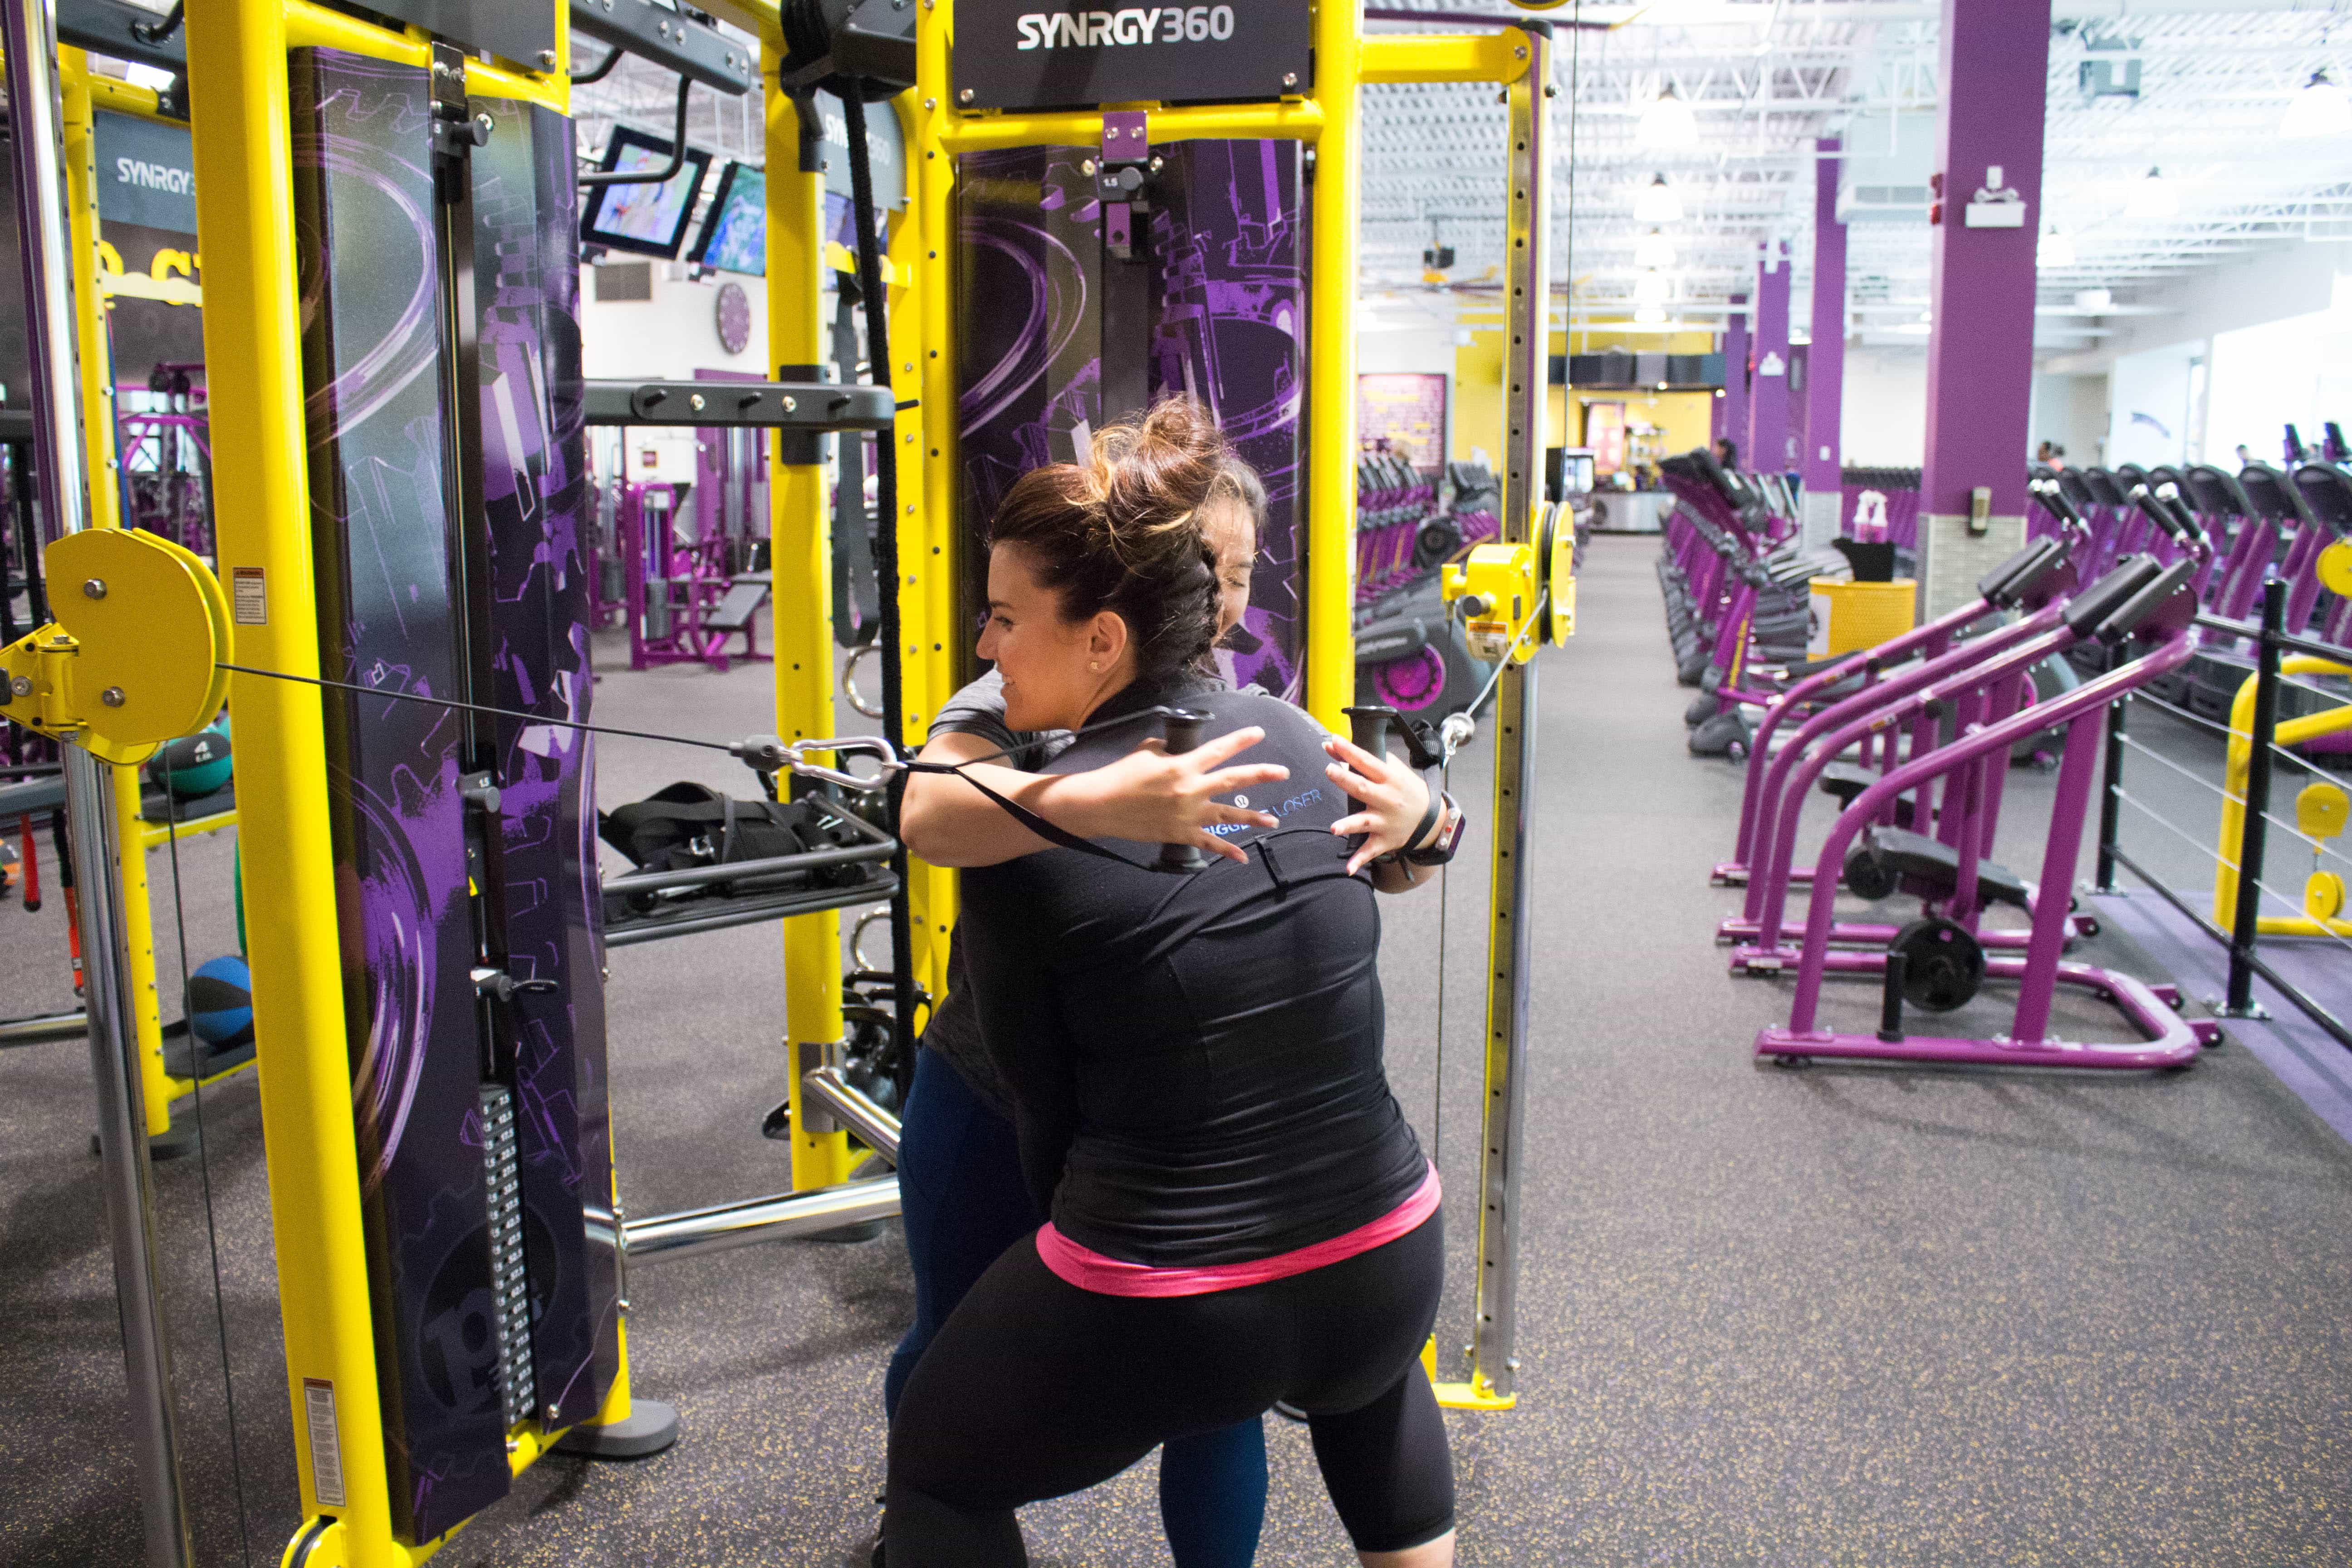 Are you looking for a no frills gym with low rates in Toronto? Check out the new Planet Fitness location at Gerrard Square!